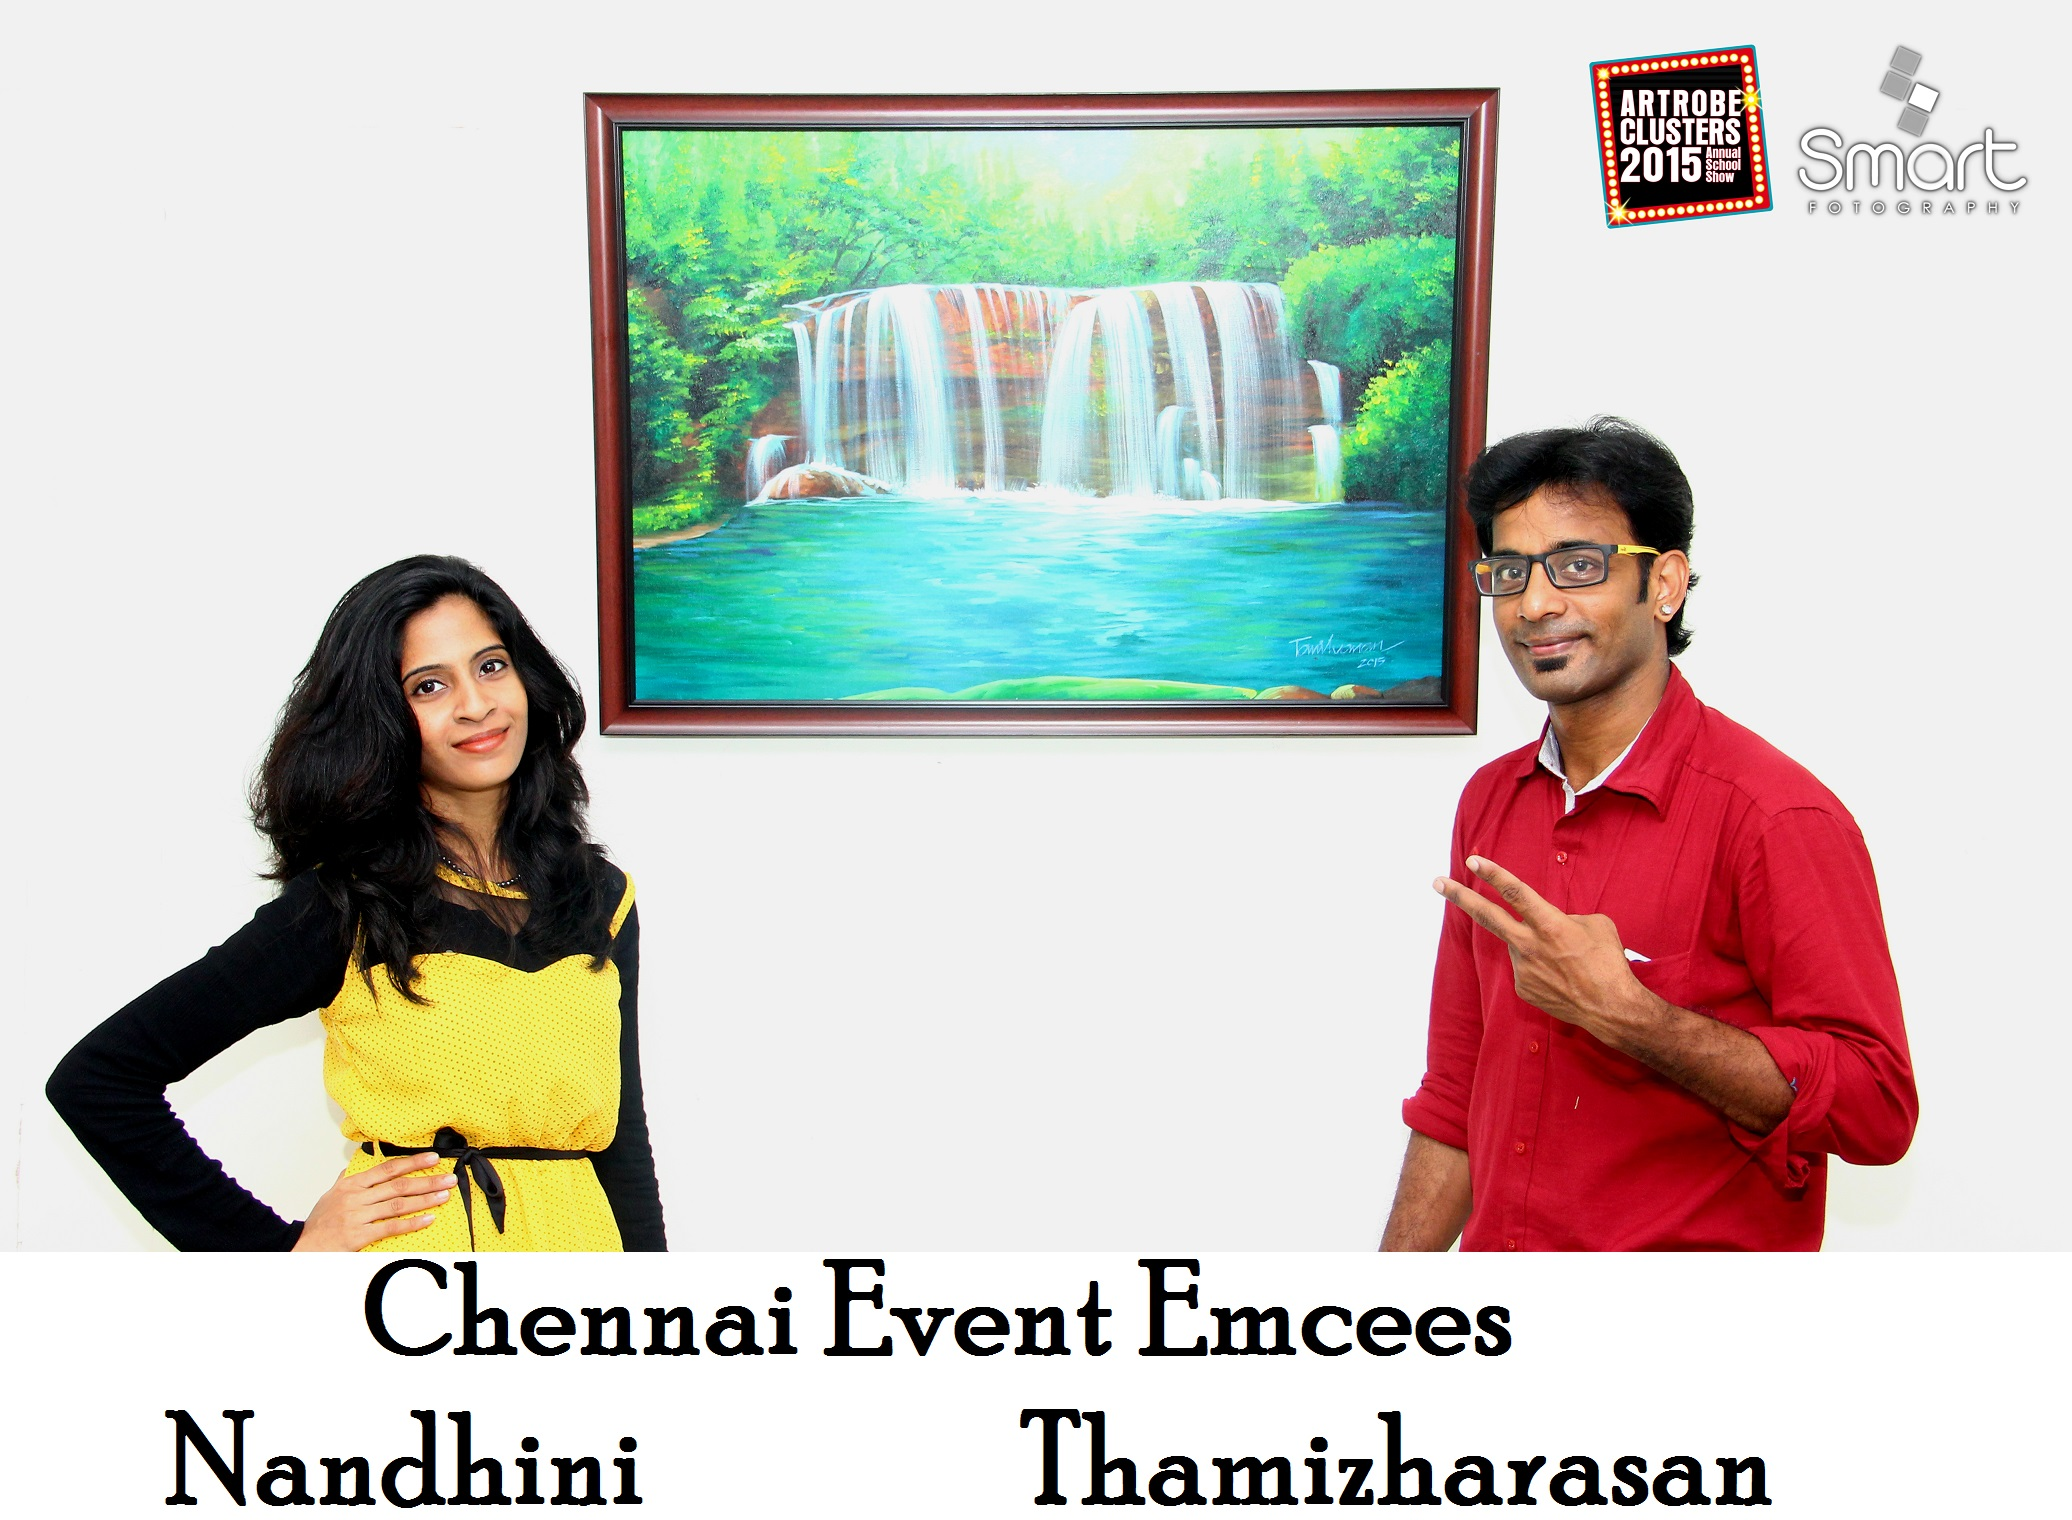 chennai-school-event-emcees-nandhini-and-thamizharasan